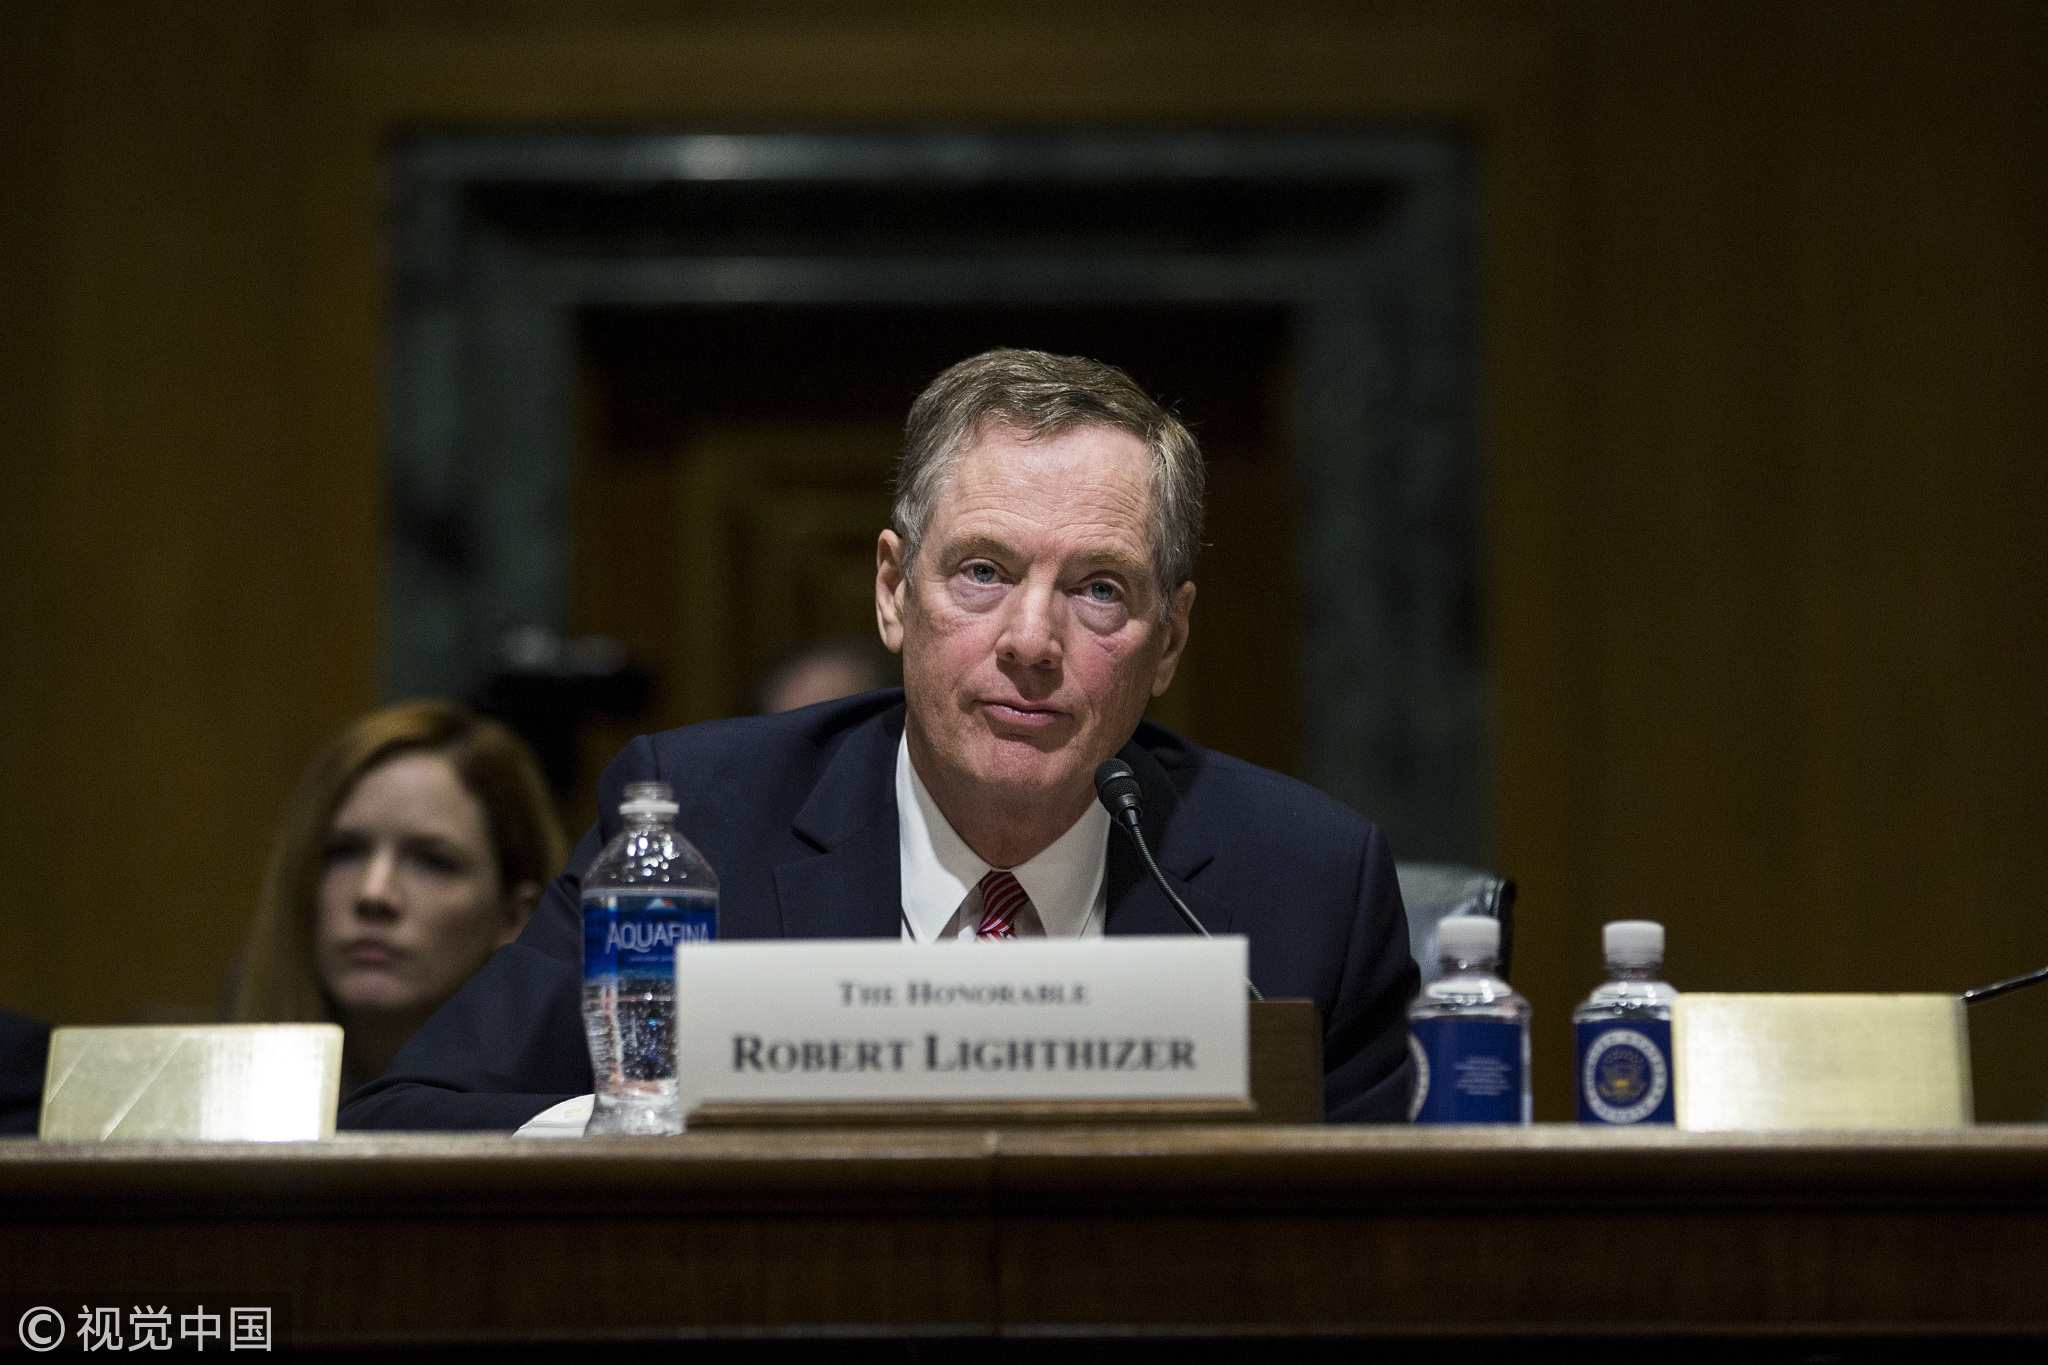 Robert Lighthizer, the US trade representative nominee for President Donald Trump, listens during a Senate Finance Committee confirmation hearing in Washington, D.C., US on Tuesday, March 14, 2017. [Photo: VCG]